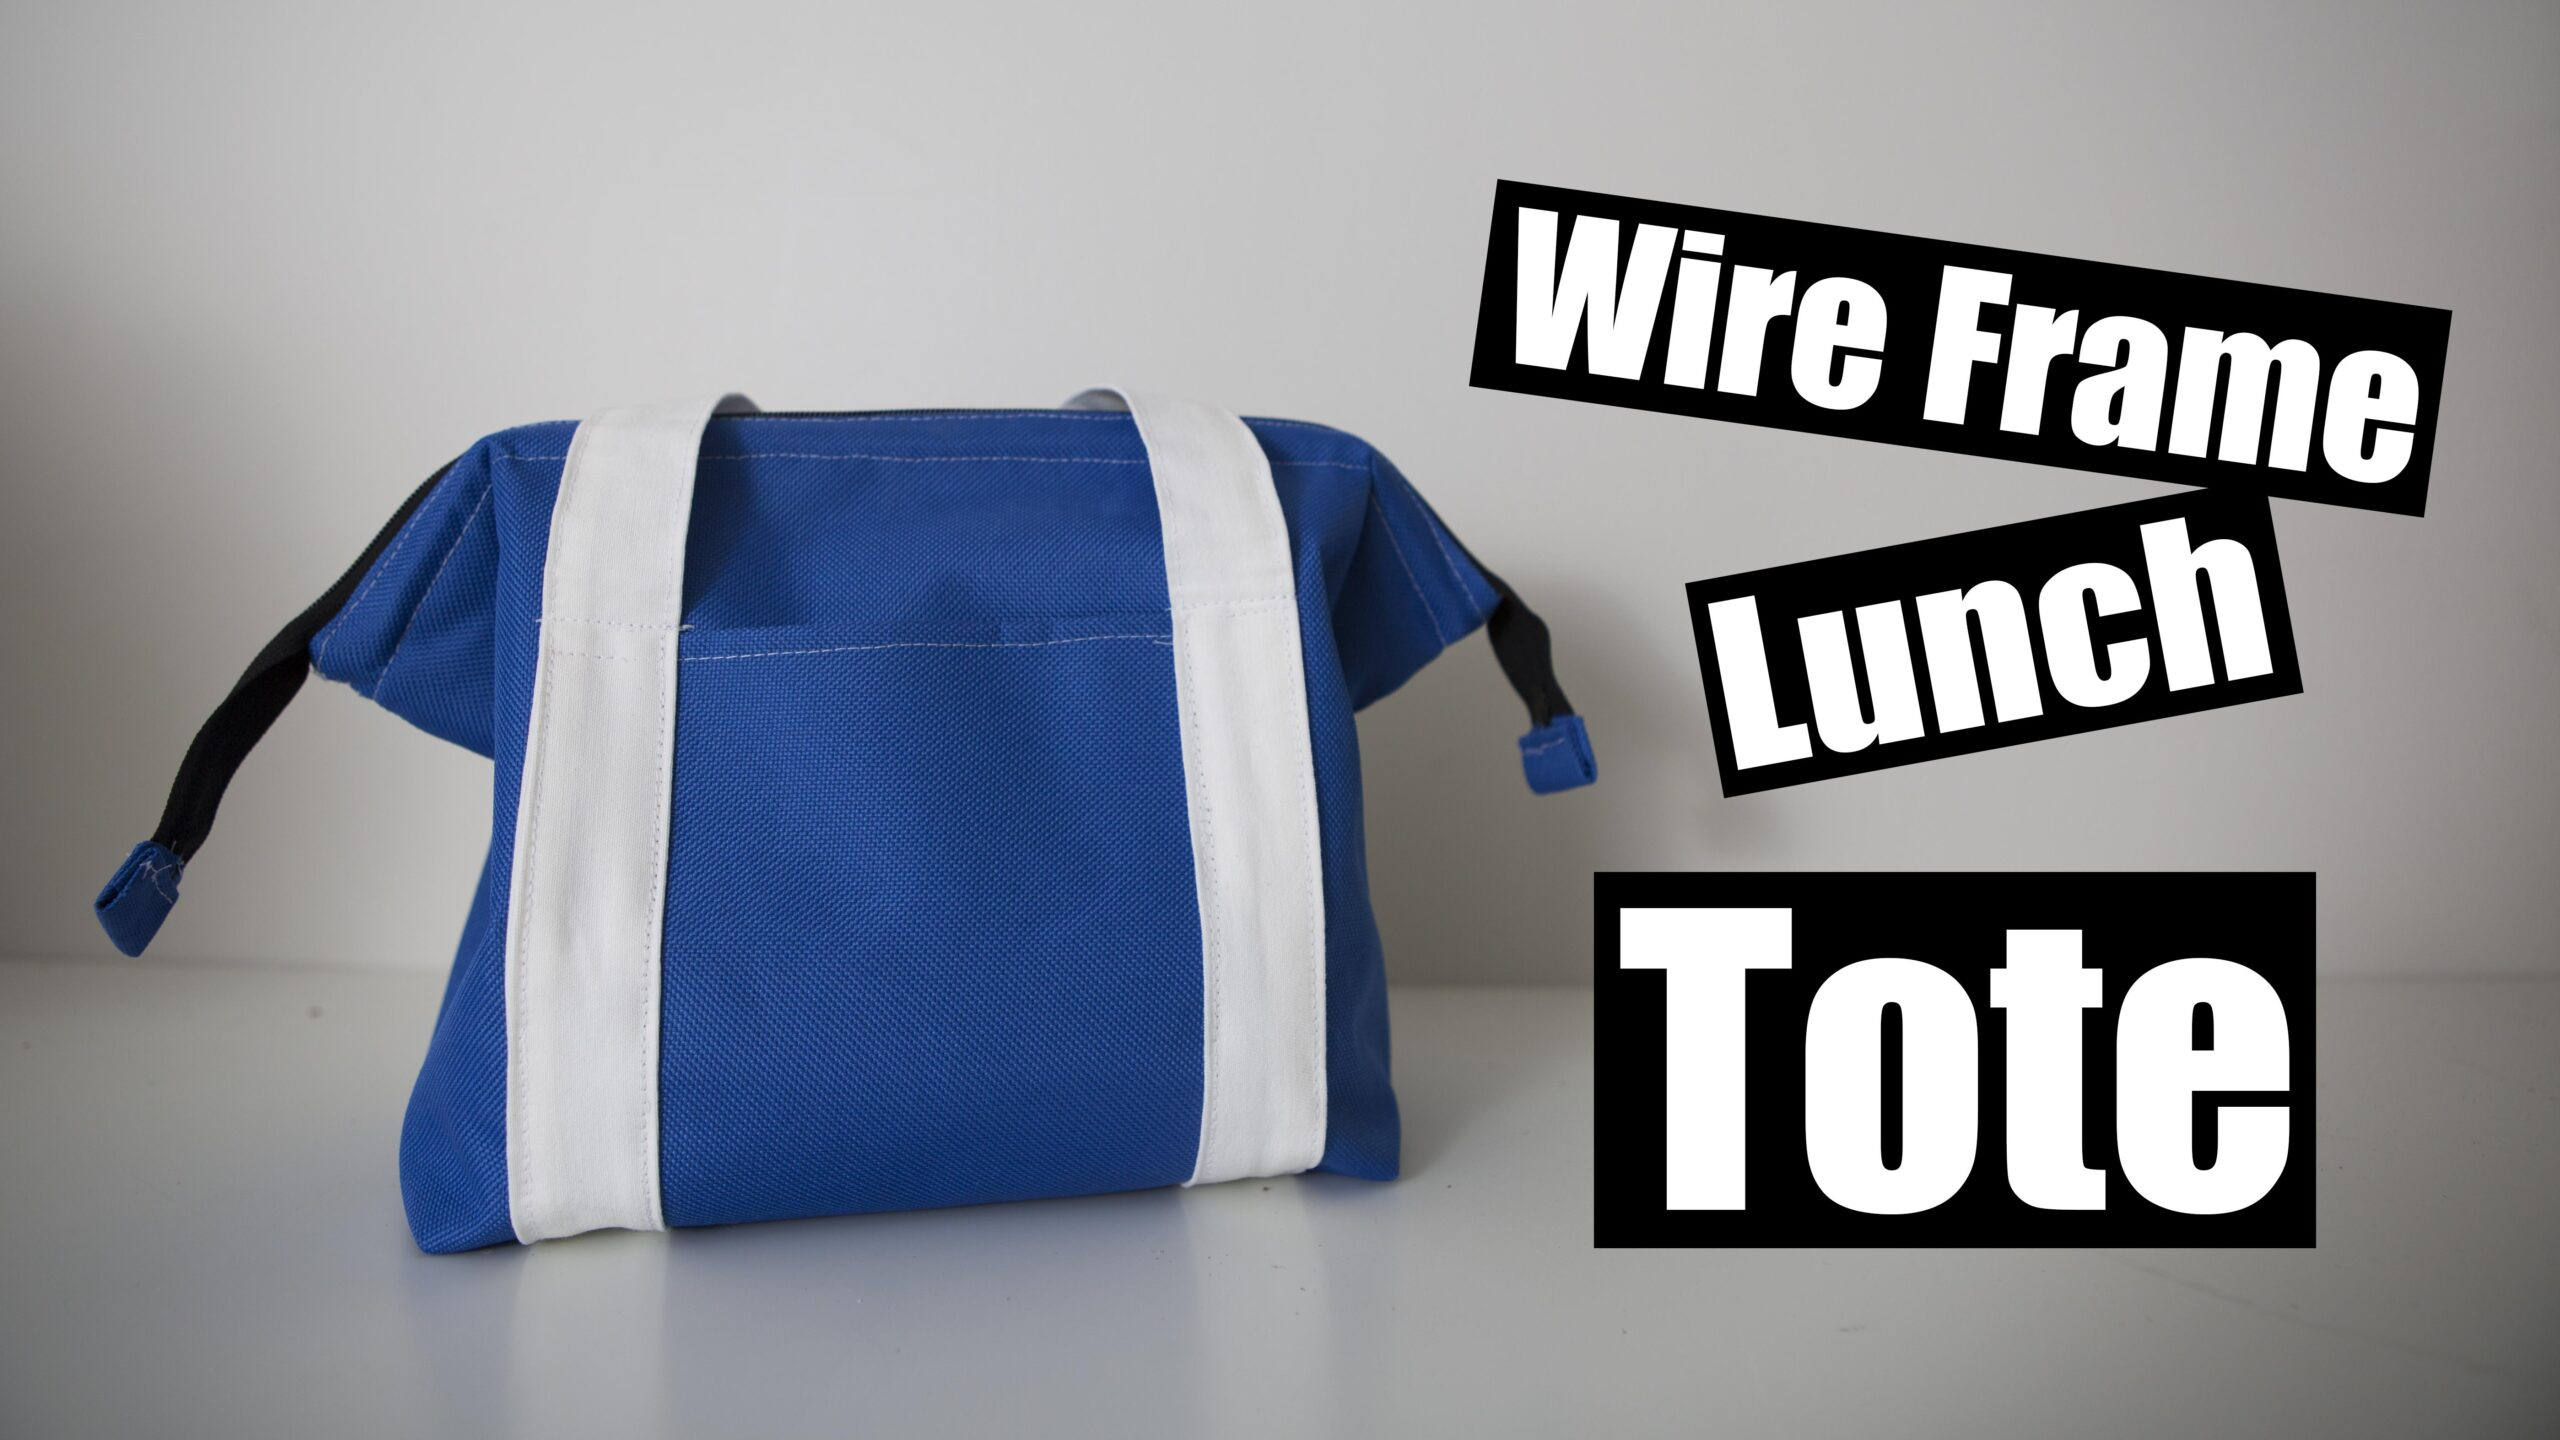 Wire Frame Lunch Tote